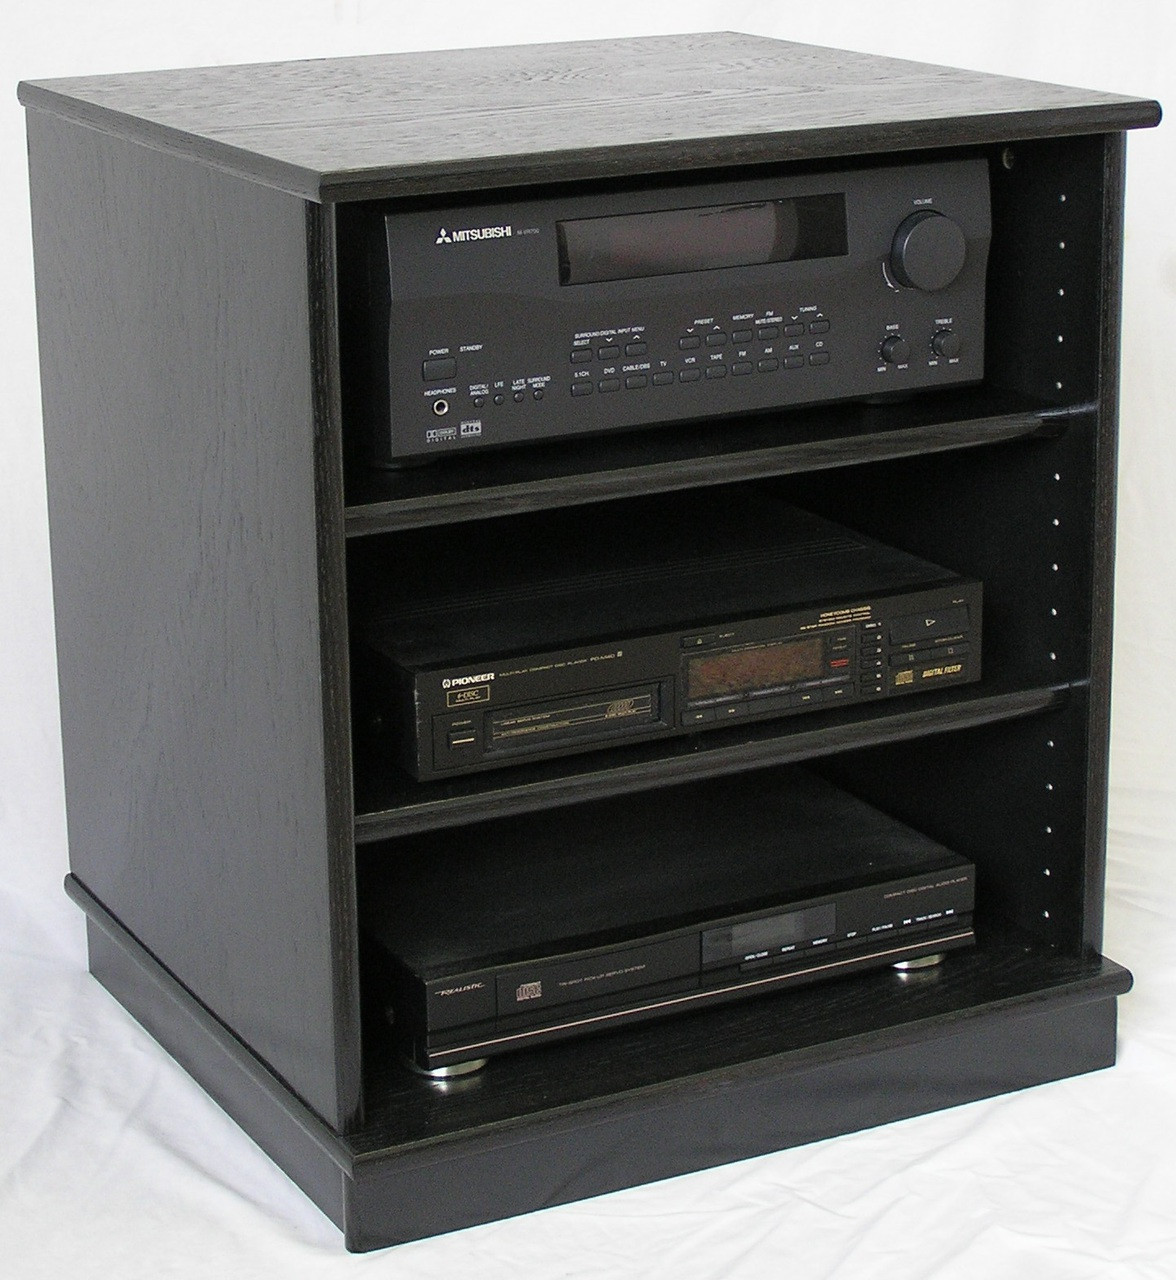 Best Front View Of Small Black Oak Entertainment Center Stereo Cabinet 888 850